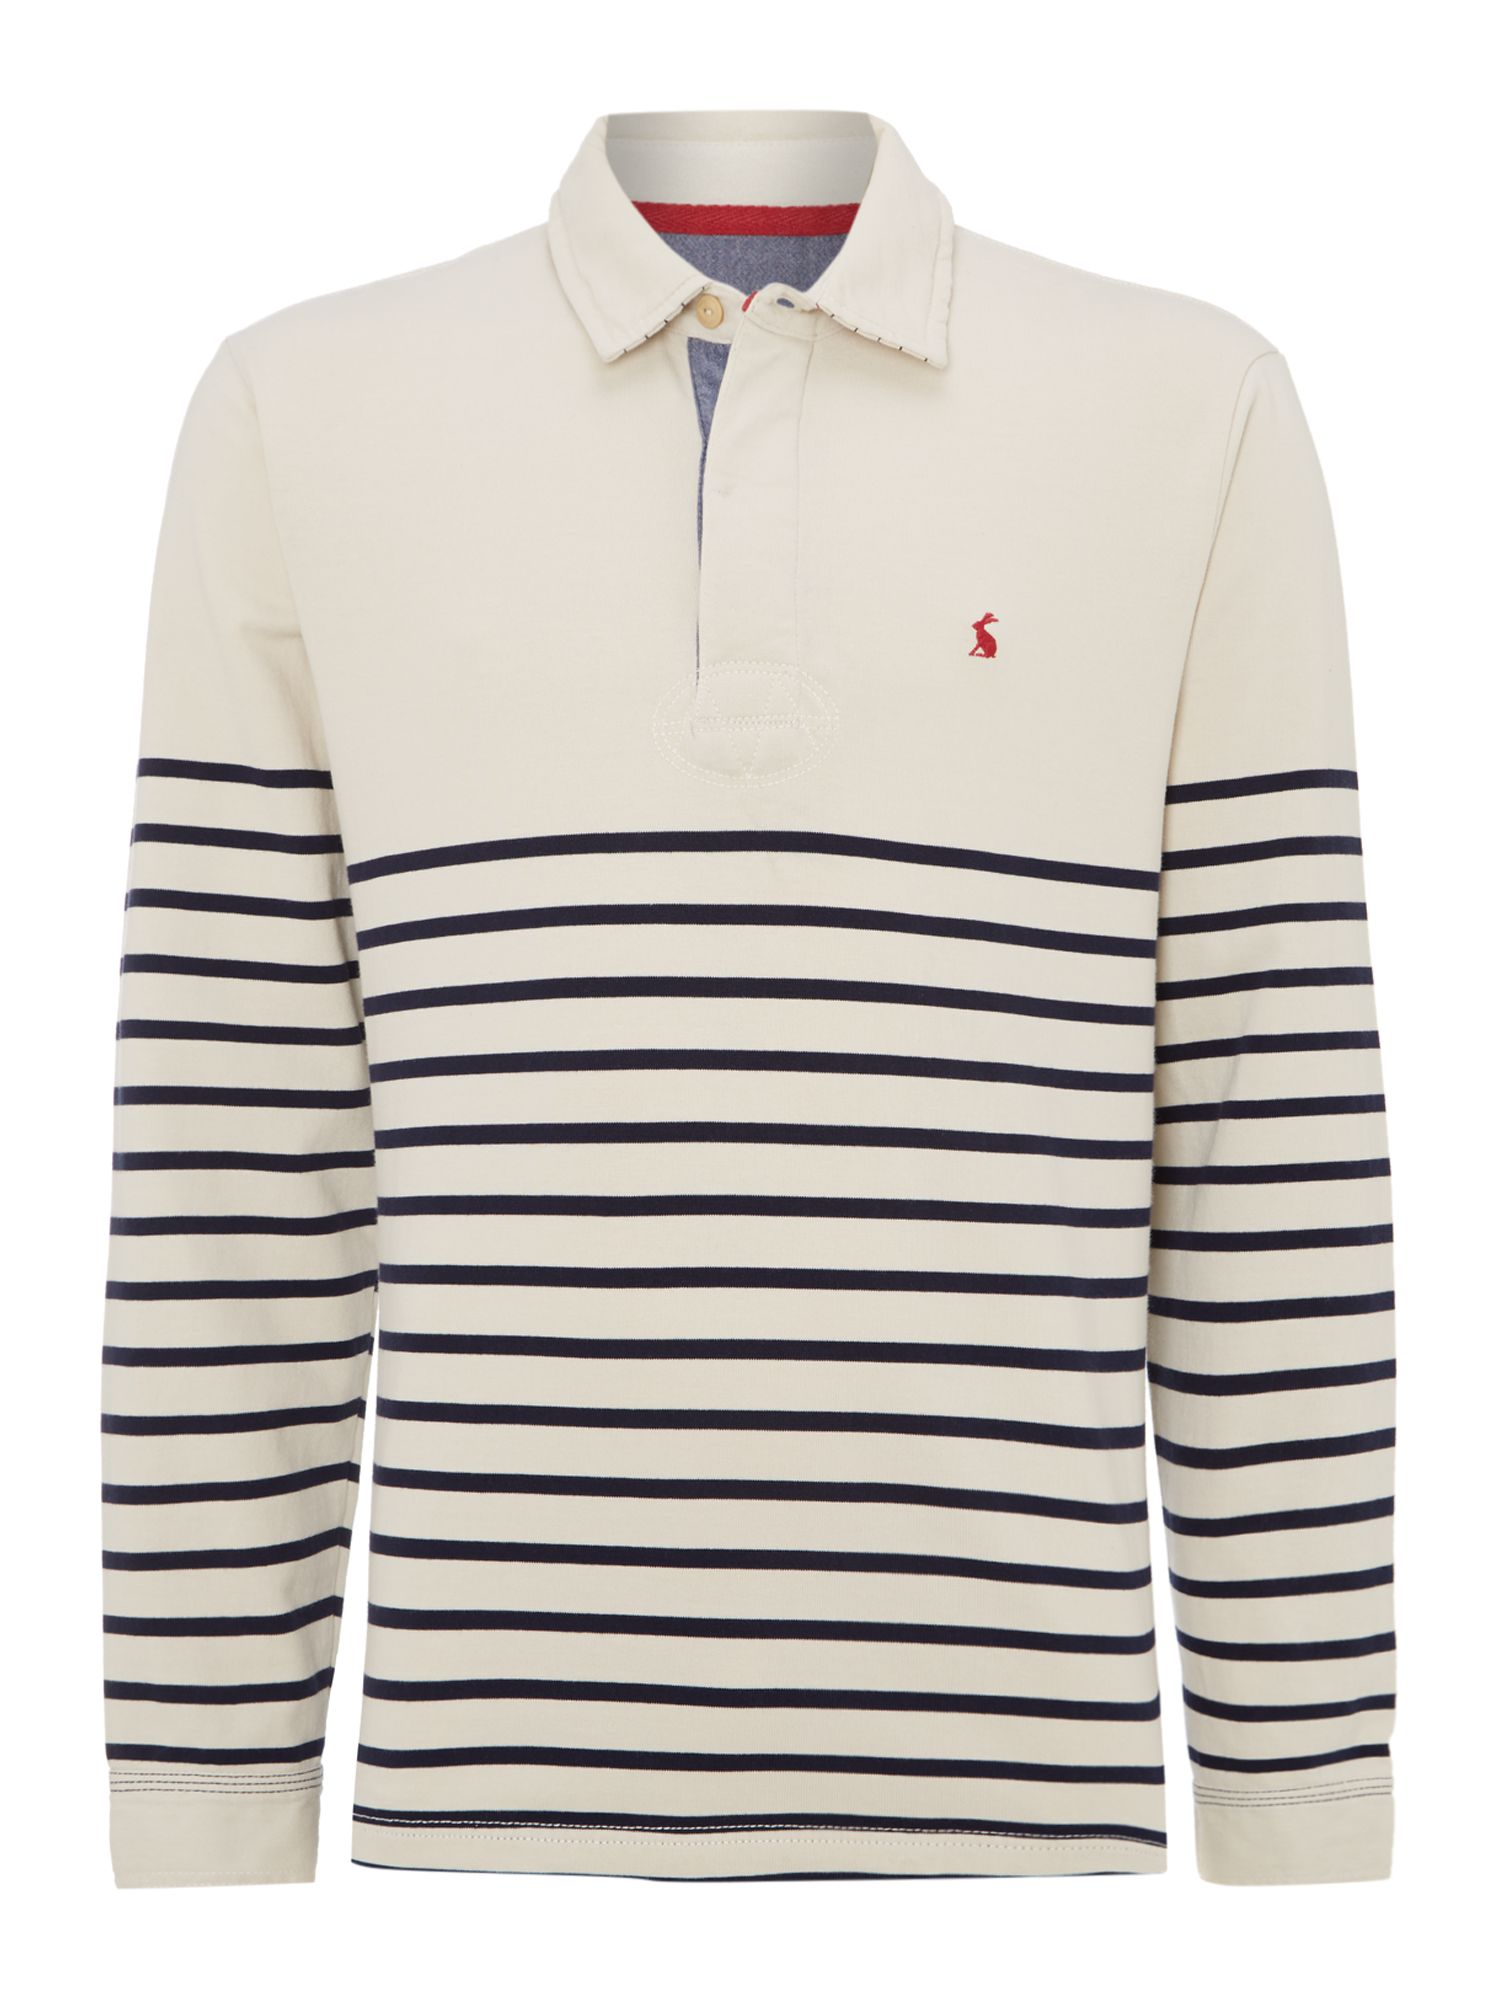 Stripe rugby shirt